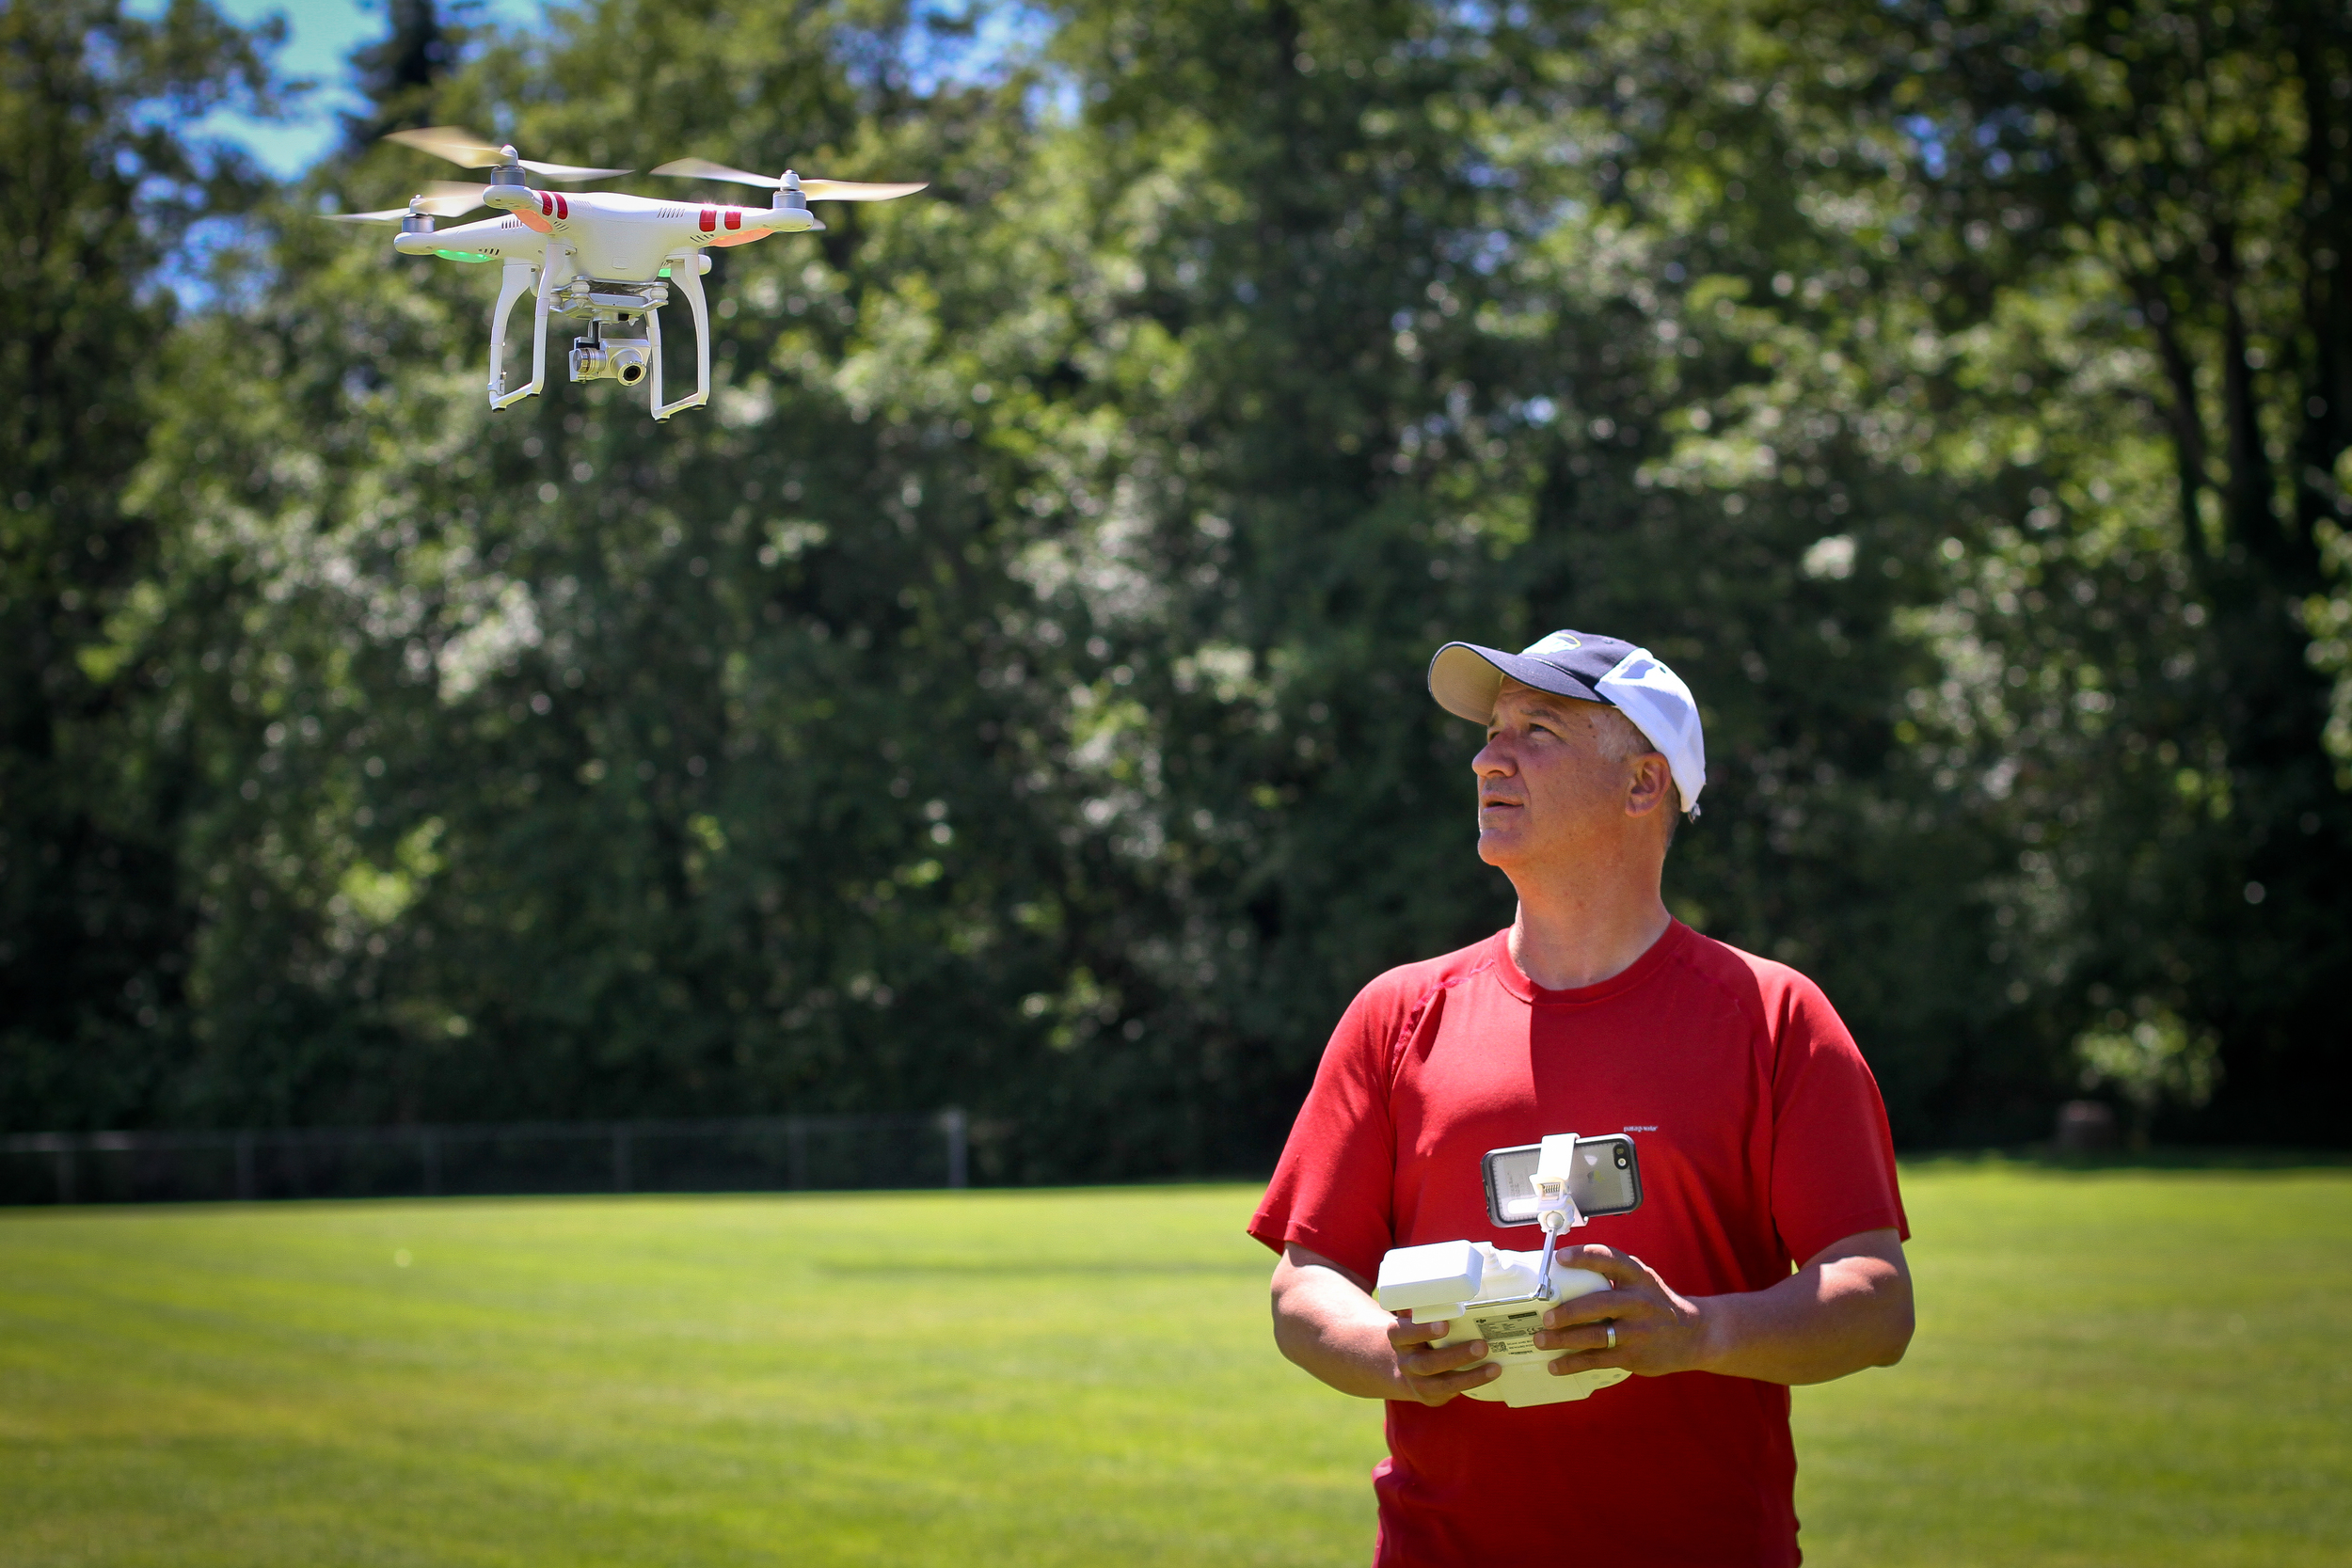 Old fart on the Drone controls